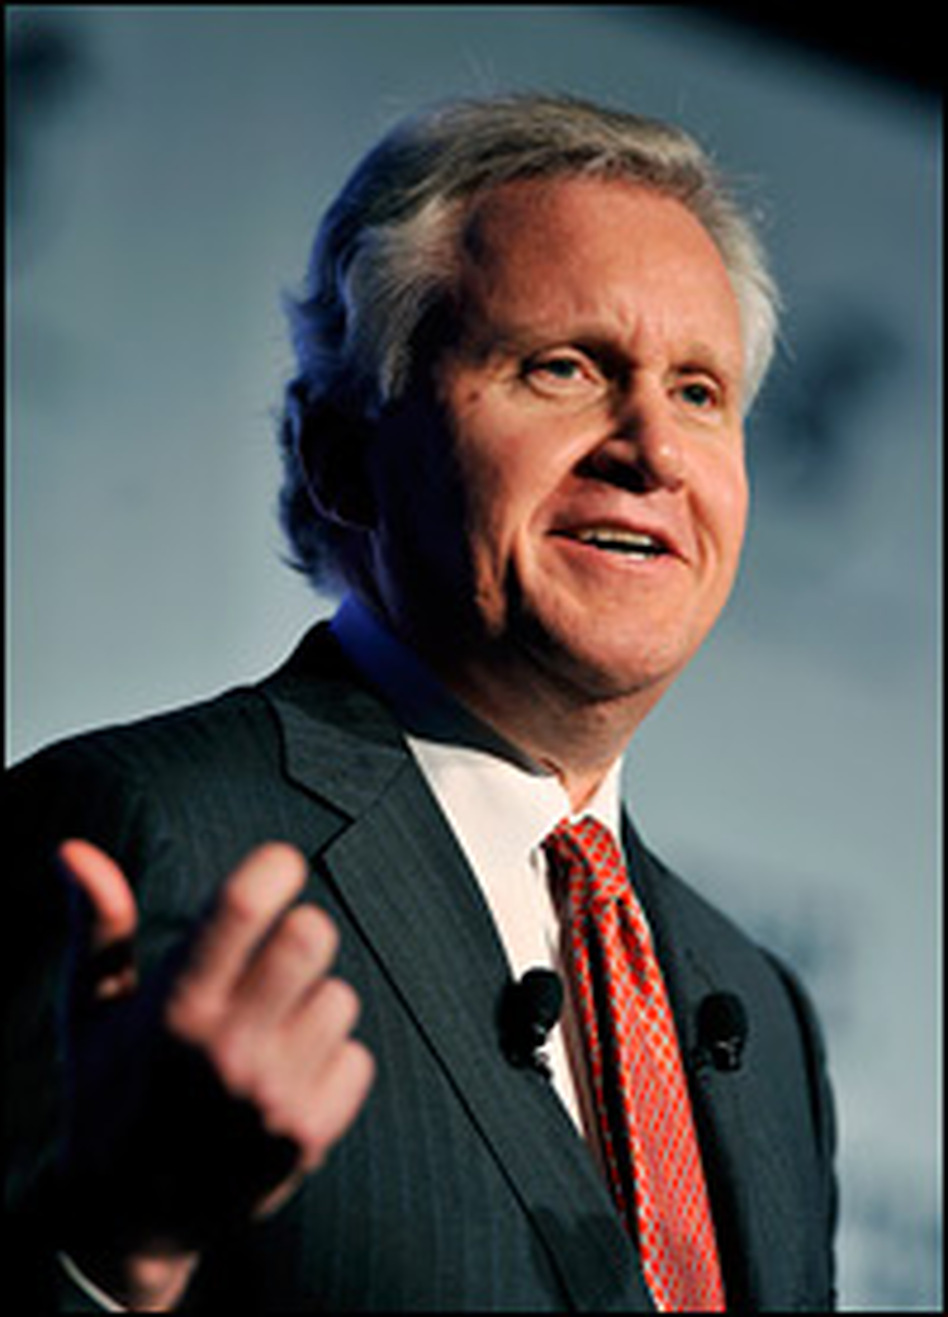 General Electric CEO Jeffrey Immelt spoke at an economic forum in Montreal earlier in June. Immelt says GE received its largest orders ever during the depths of the recession.